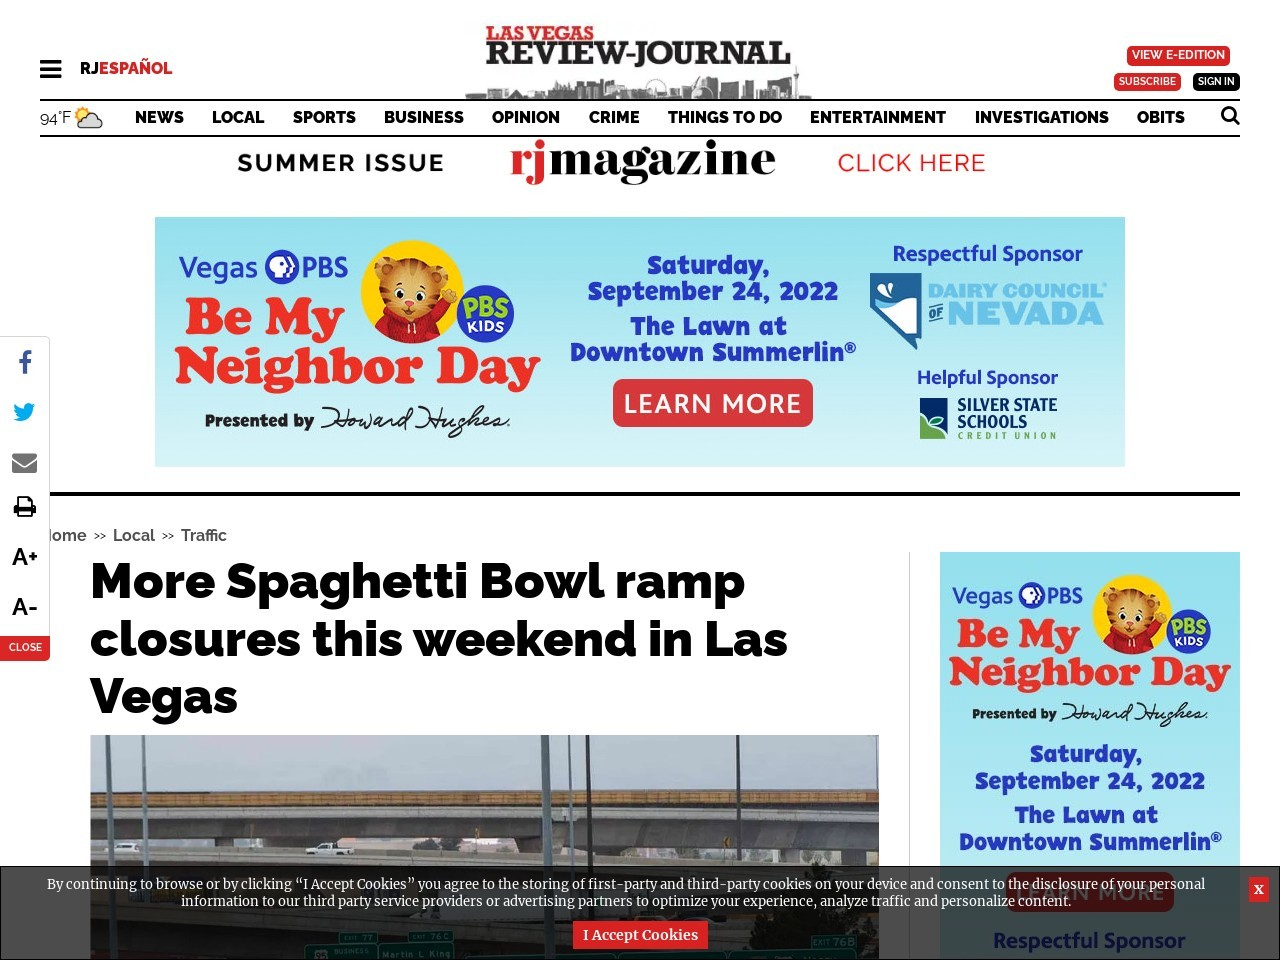 More Spaghetti Bowl ramp closures this weekend in Las Vegas